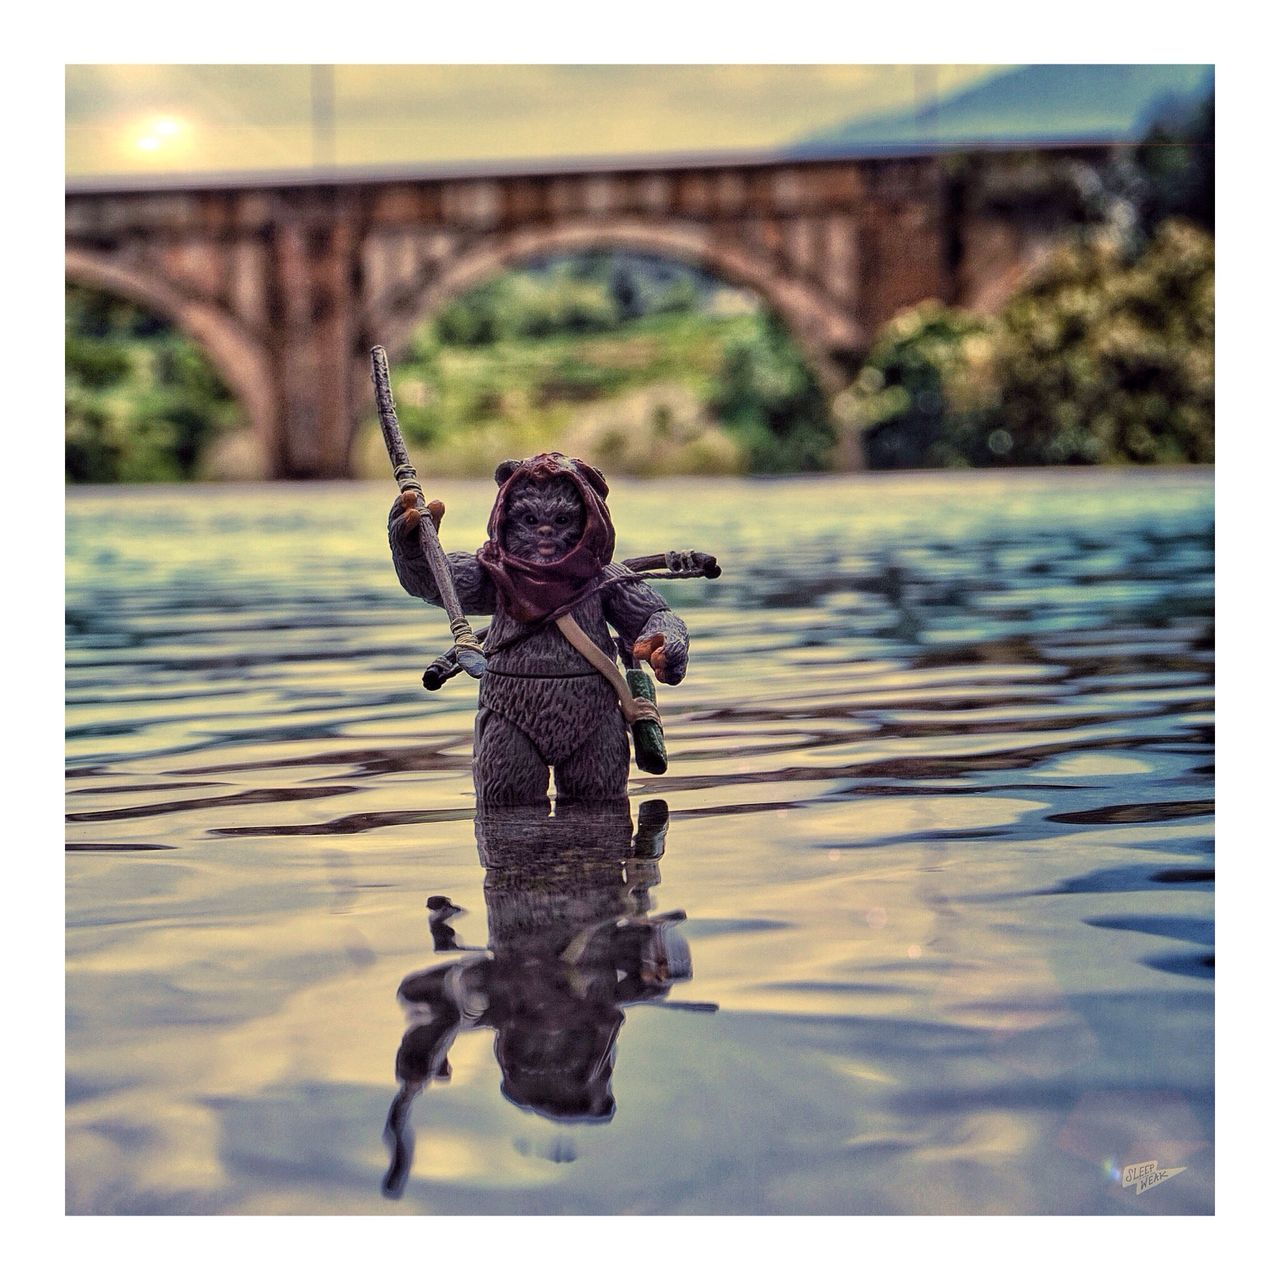 Treekthin! 🎣 Toyplanet Ata_dreadnoughts (null) Toycrewbuddies Toygroup_alliance EyeEm Best Shots Toy Photography Eyeemphotography Toysarehellasick EyeEm Toyphotography Toyphotography Toycommunity Starwars Ewok Lumat Outside Photography EyeEm Best Shots - Nature Toyoutsiders Toysaremydrug EyeEm Nature Lover Eye4photography  Color Epictoyart